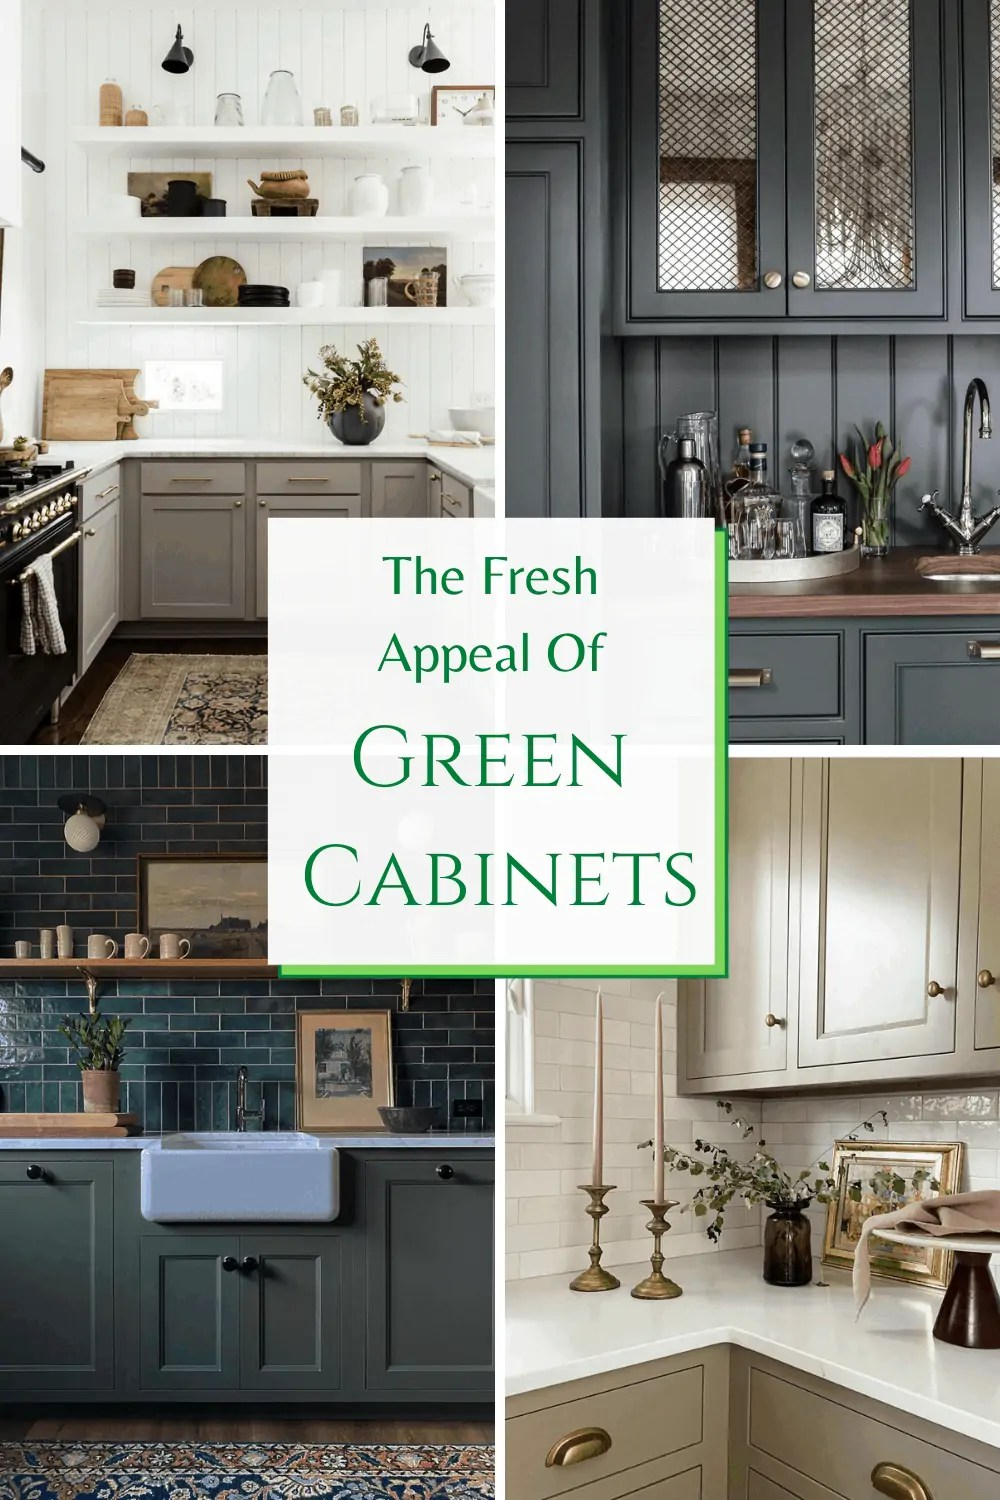 Kitchen cabinets in different shades of green